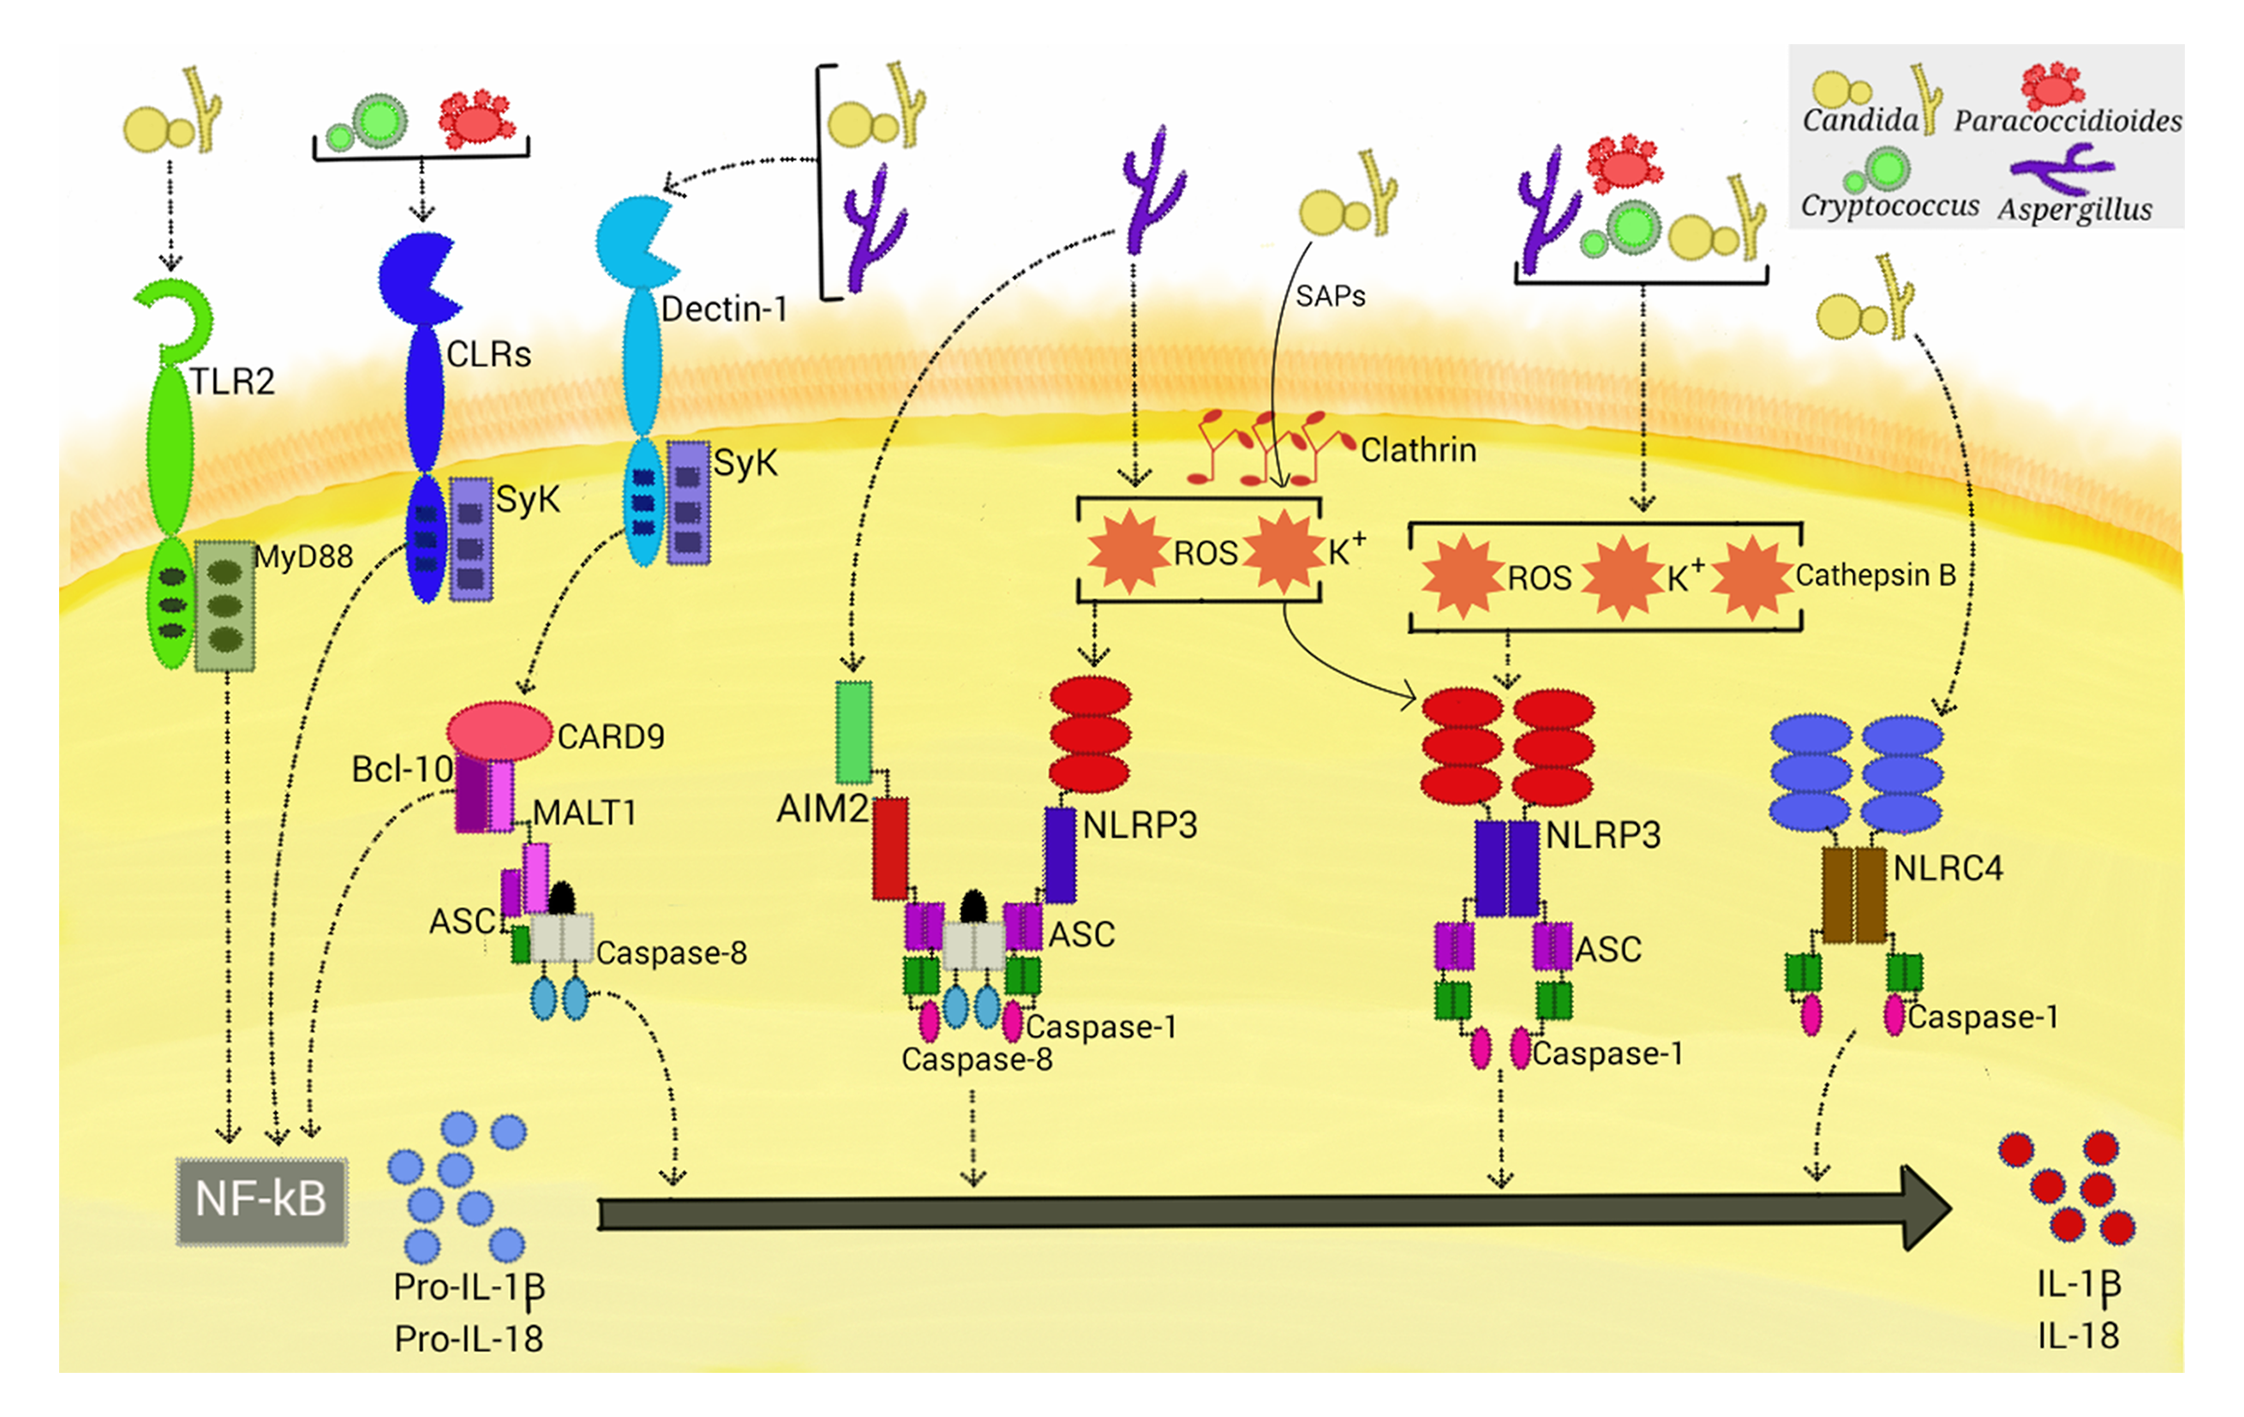 Activation of inflammasomes by fungal pathogens.